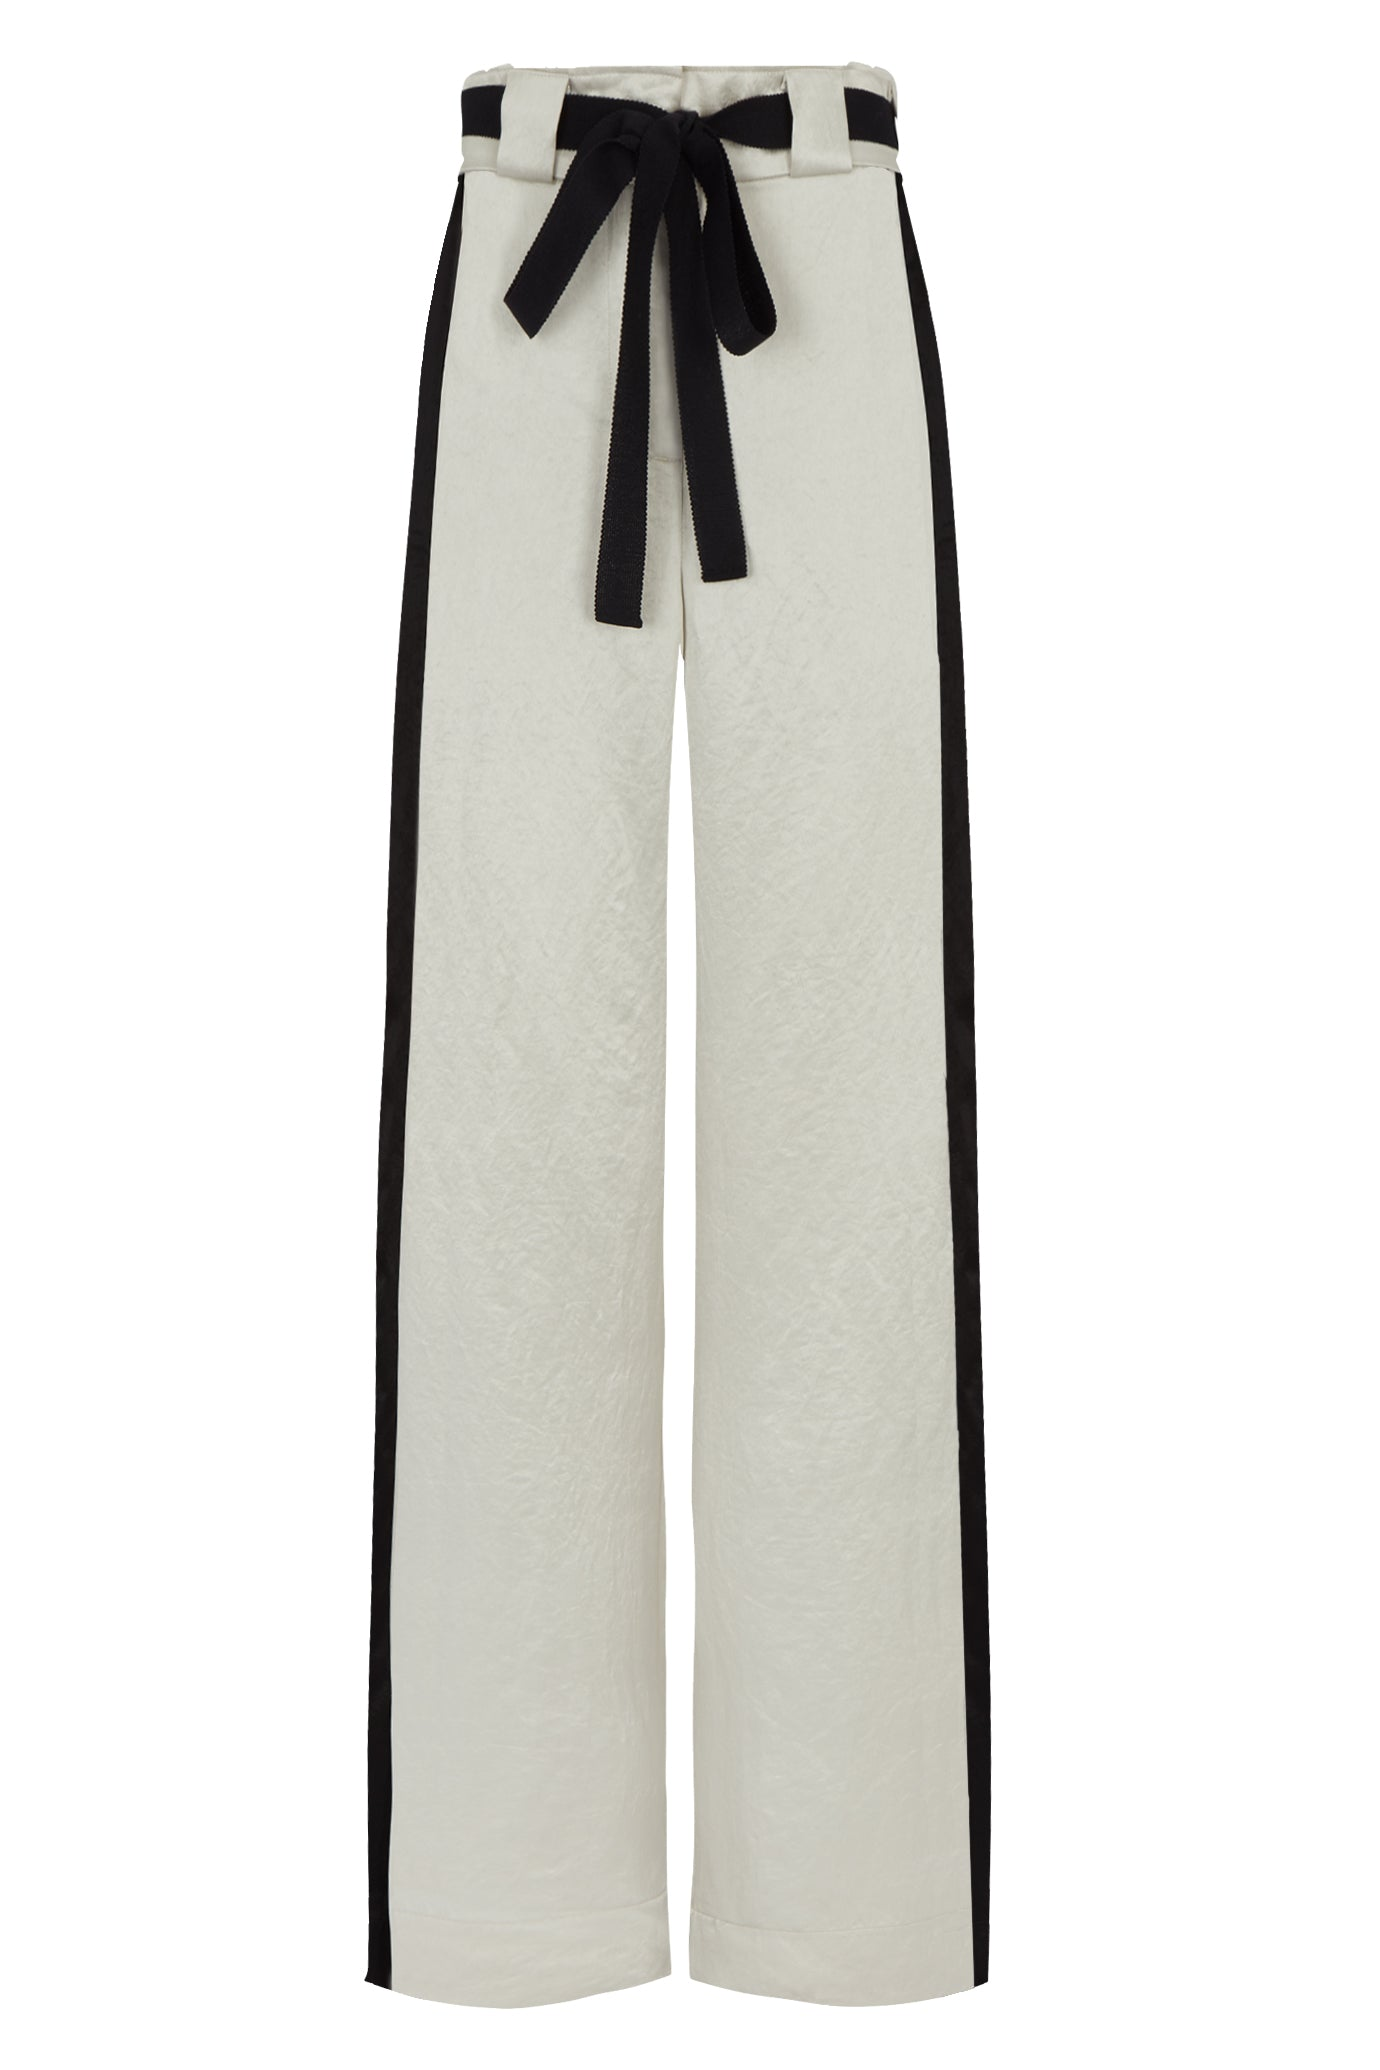 The Alice Straight Leg Trouser - Stone & Black Natural Fabric